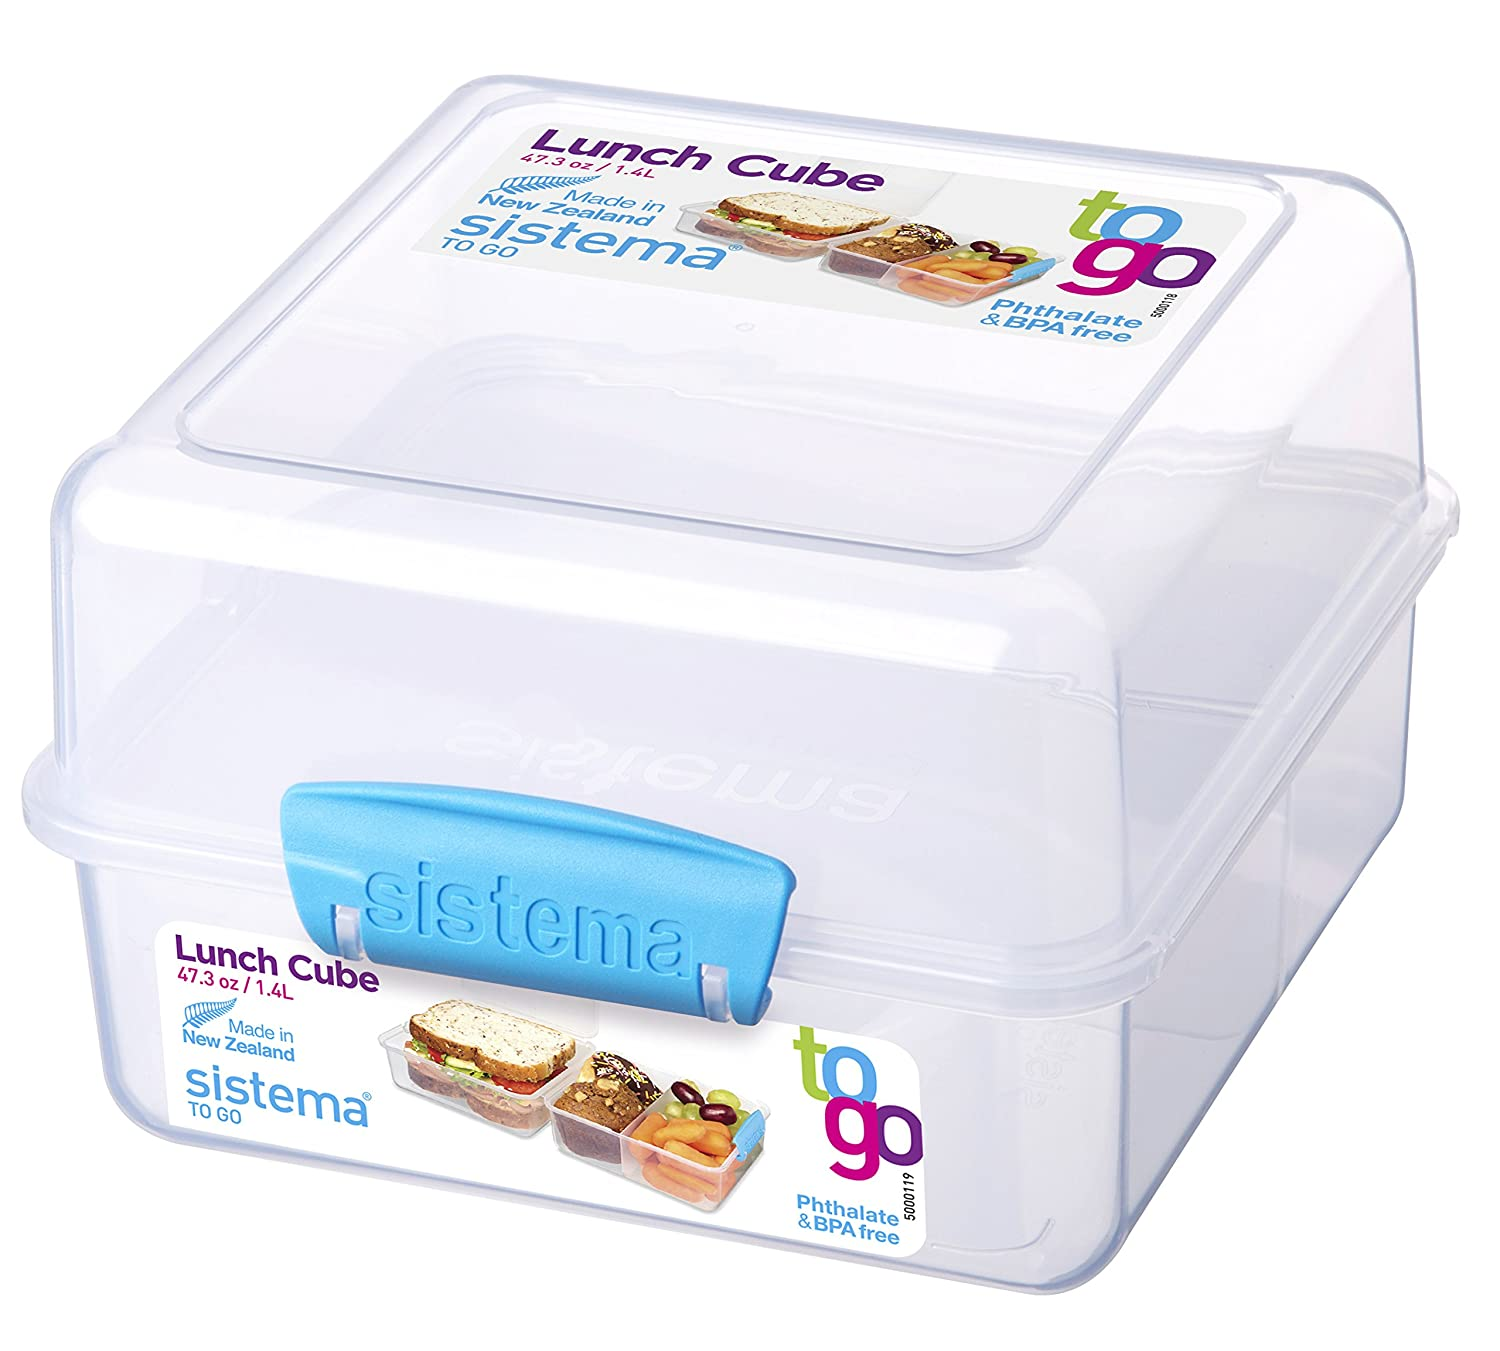 Sistema To Go Collection Lunch Cube Food Storage Container, 47.3 Ounce/ 5.9 Cup, Clear with Assorted Color Accents 21731ZS